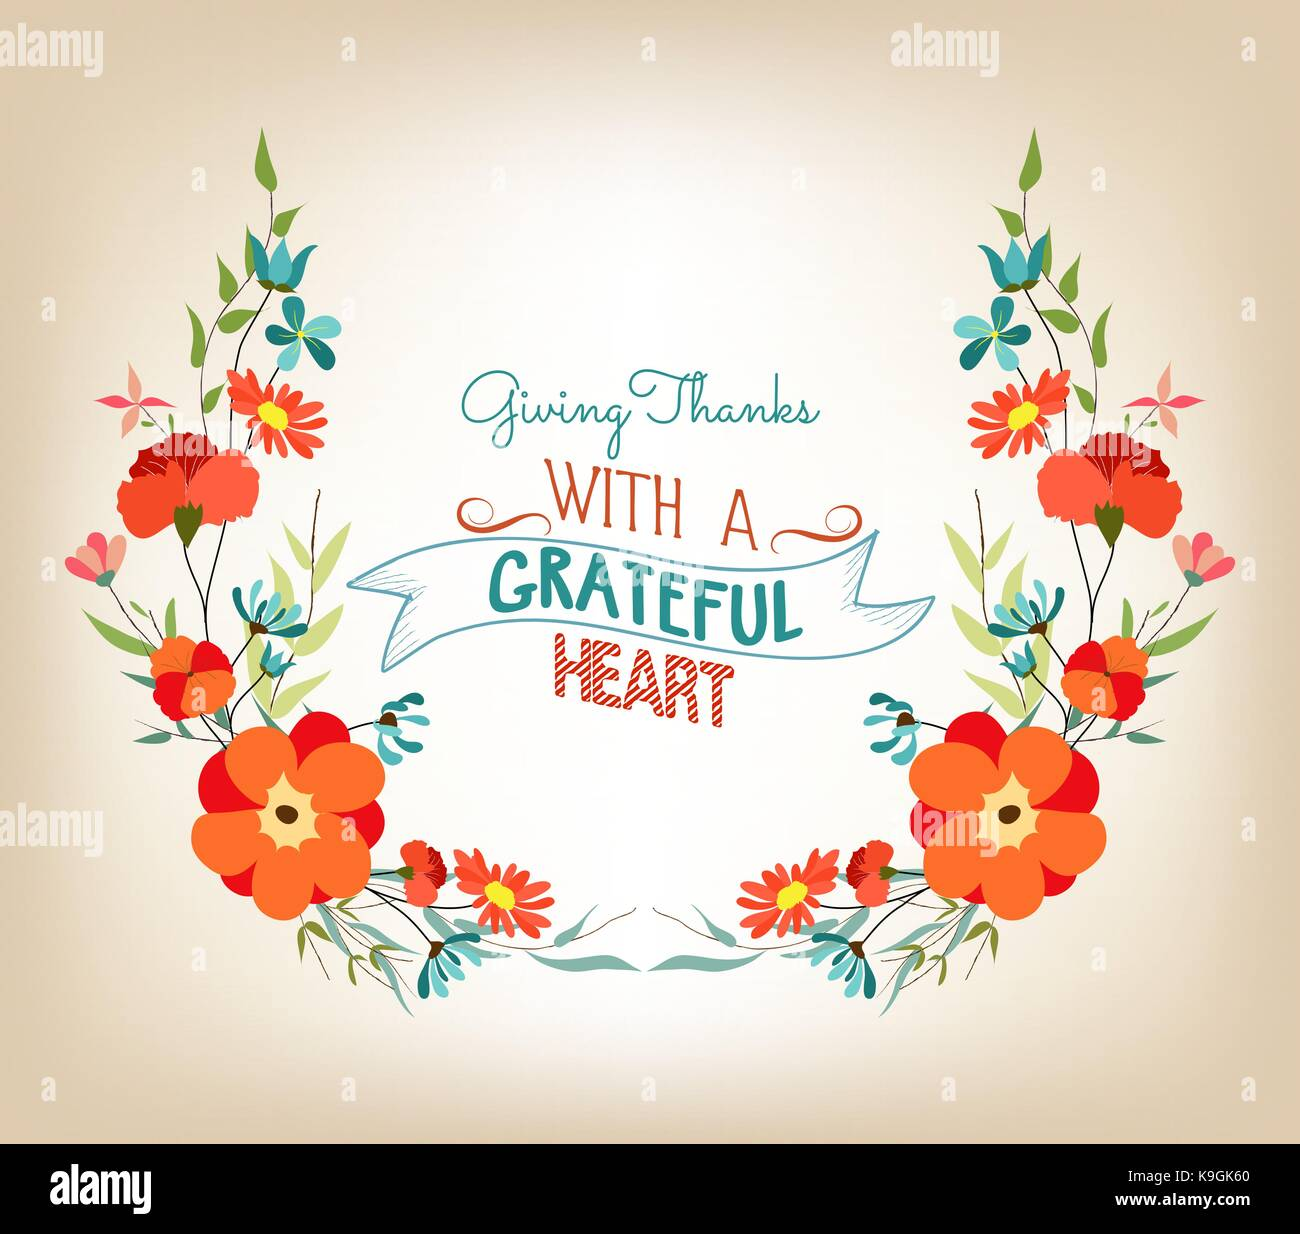 Floral background thanksgiving greeting card with decorative flowers floral background thanksgiving greeting card with decorative flowers m4hsunfo